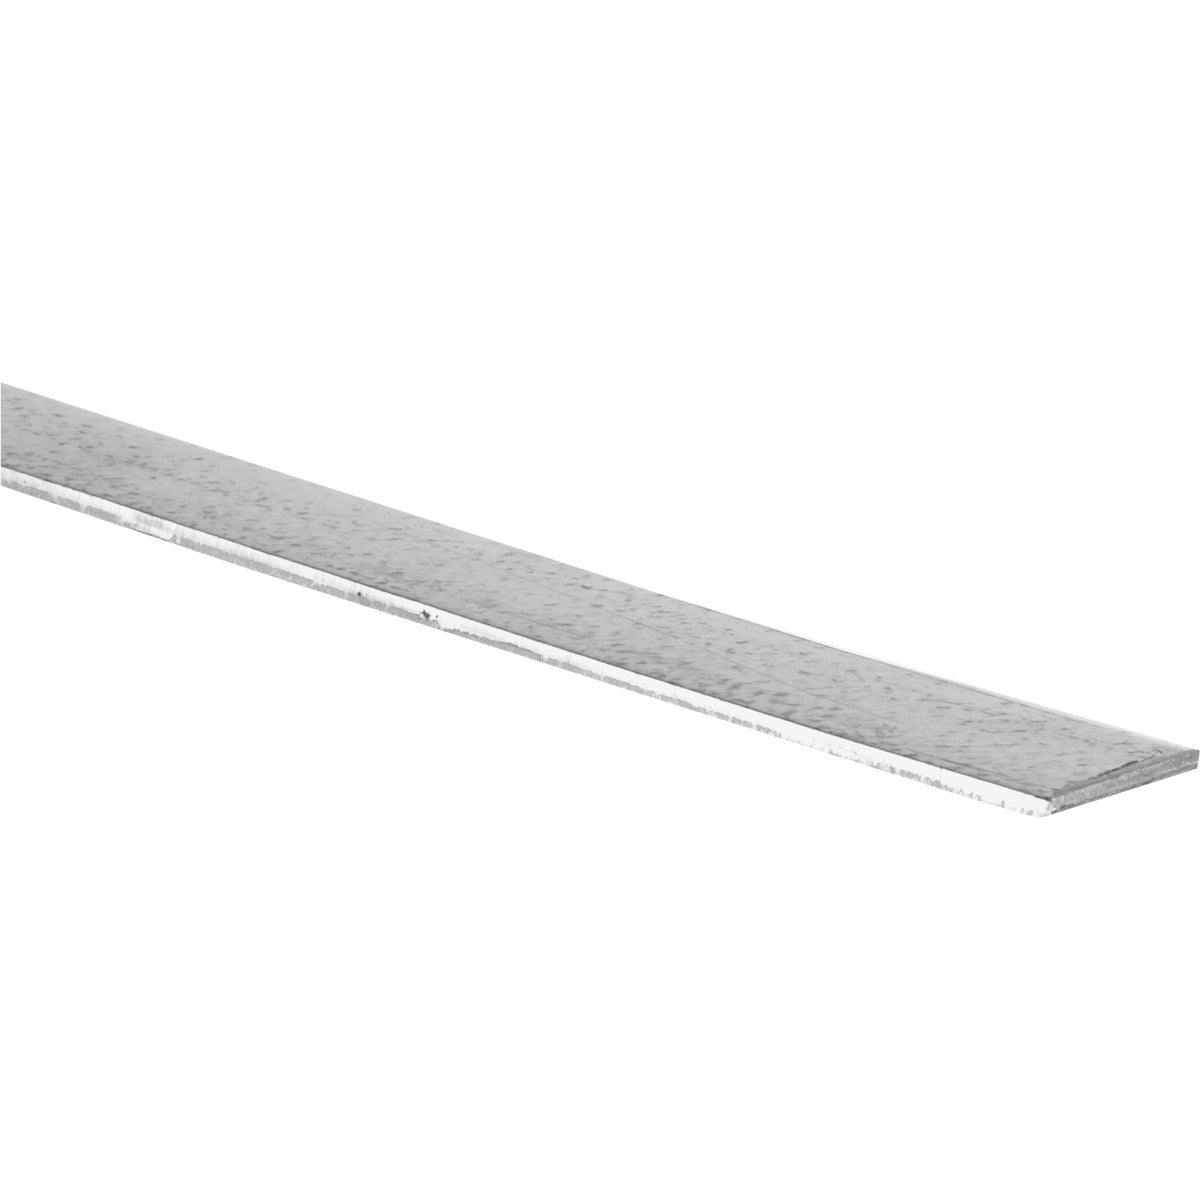 1-1/4X72 GLV SOLID FLAT - N180067 by National Mfg Co